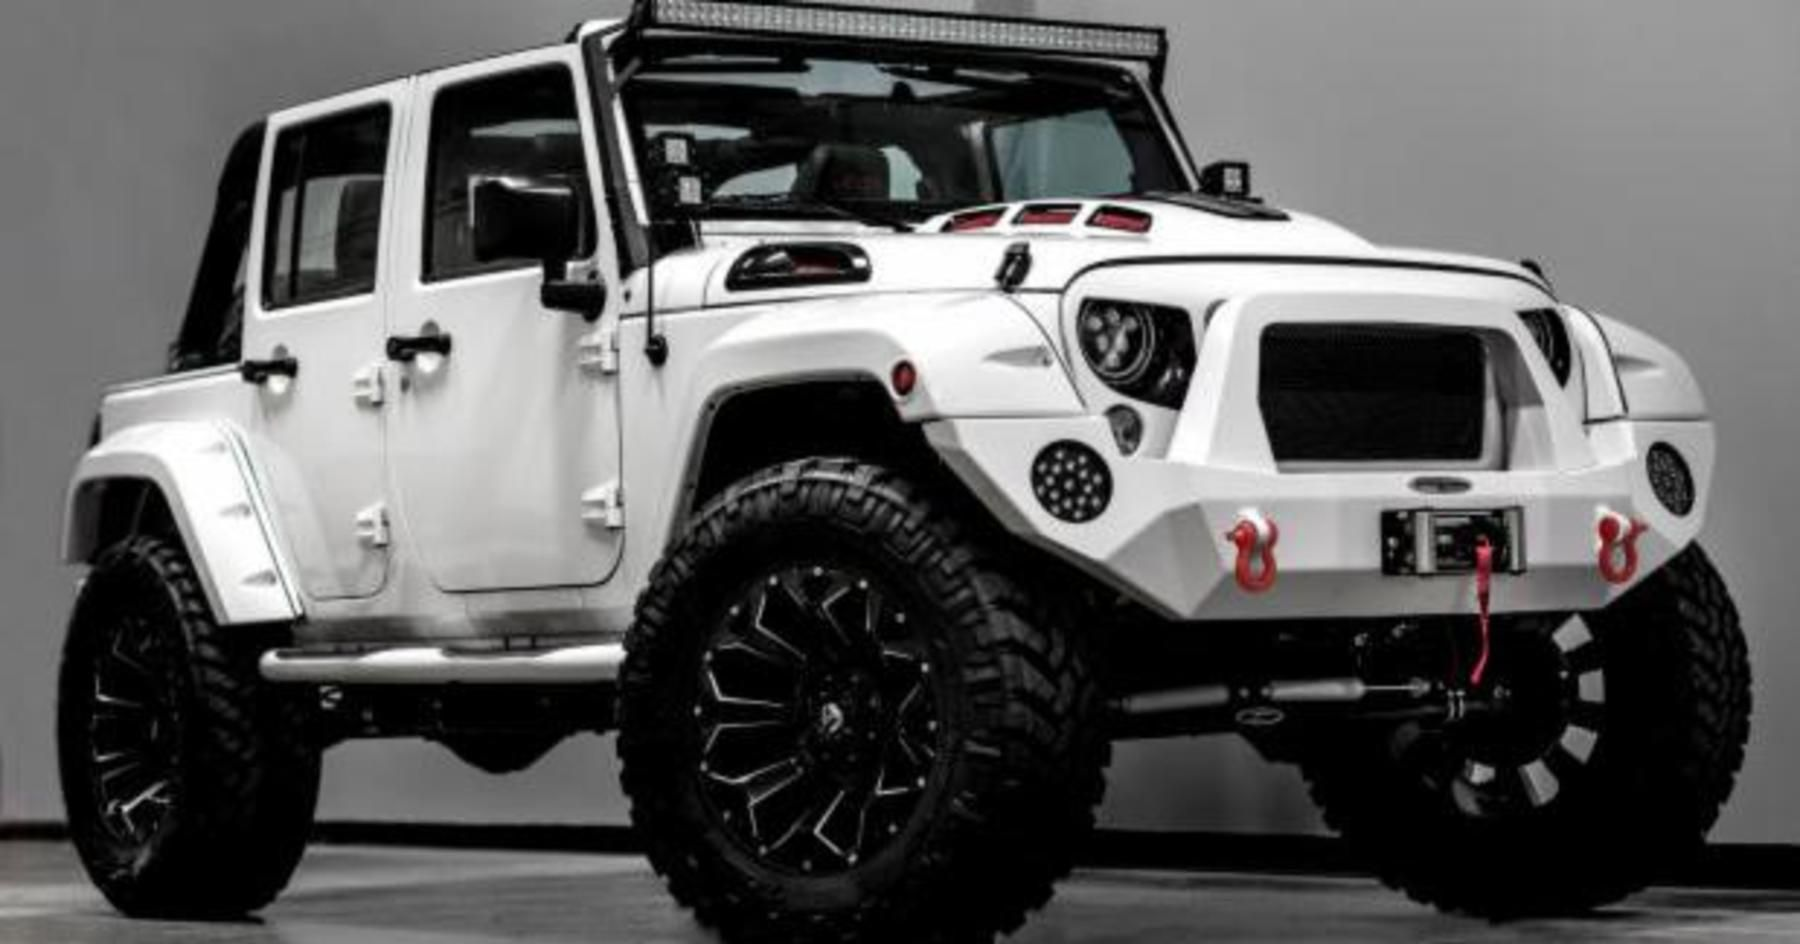 The Force Is Strong With This Custom Stormtrooper Jeep